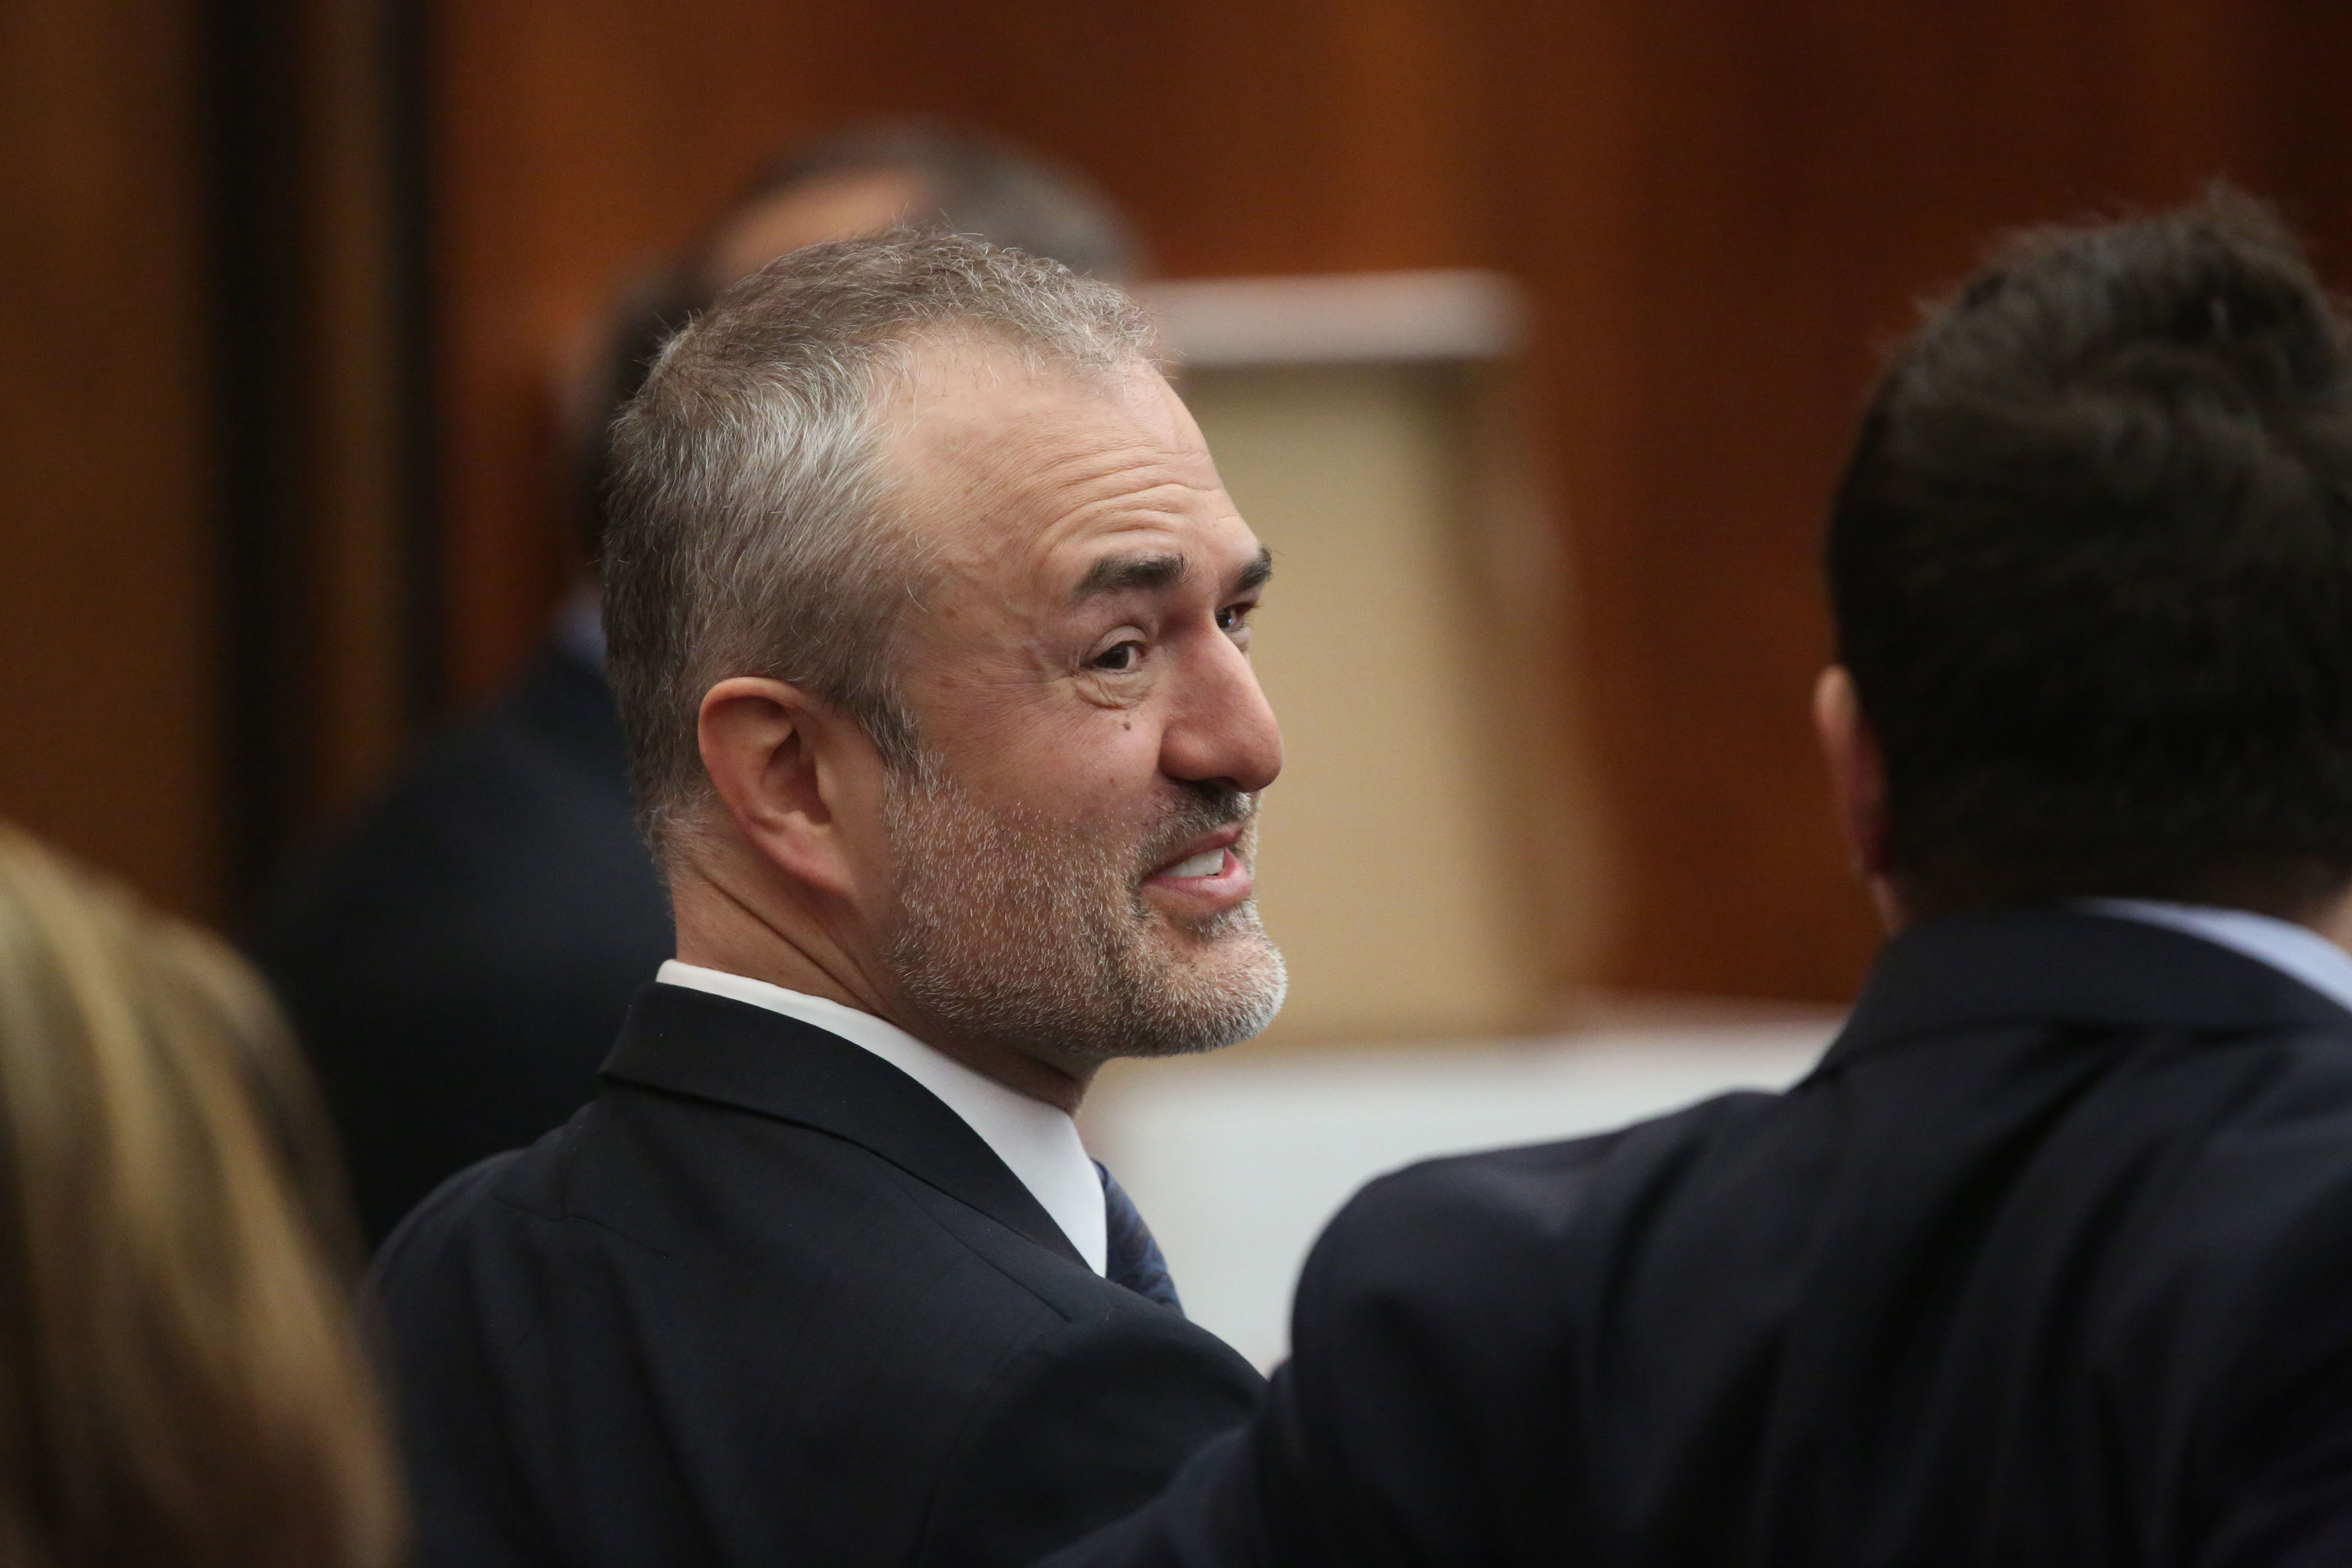 Nick Denton during the Hogan trial against Gawker Media in March 2016.